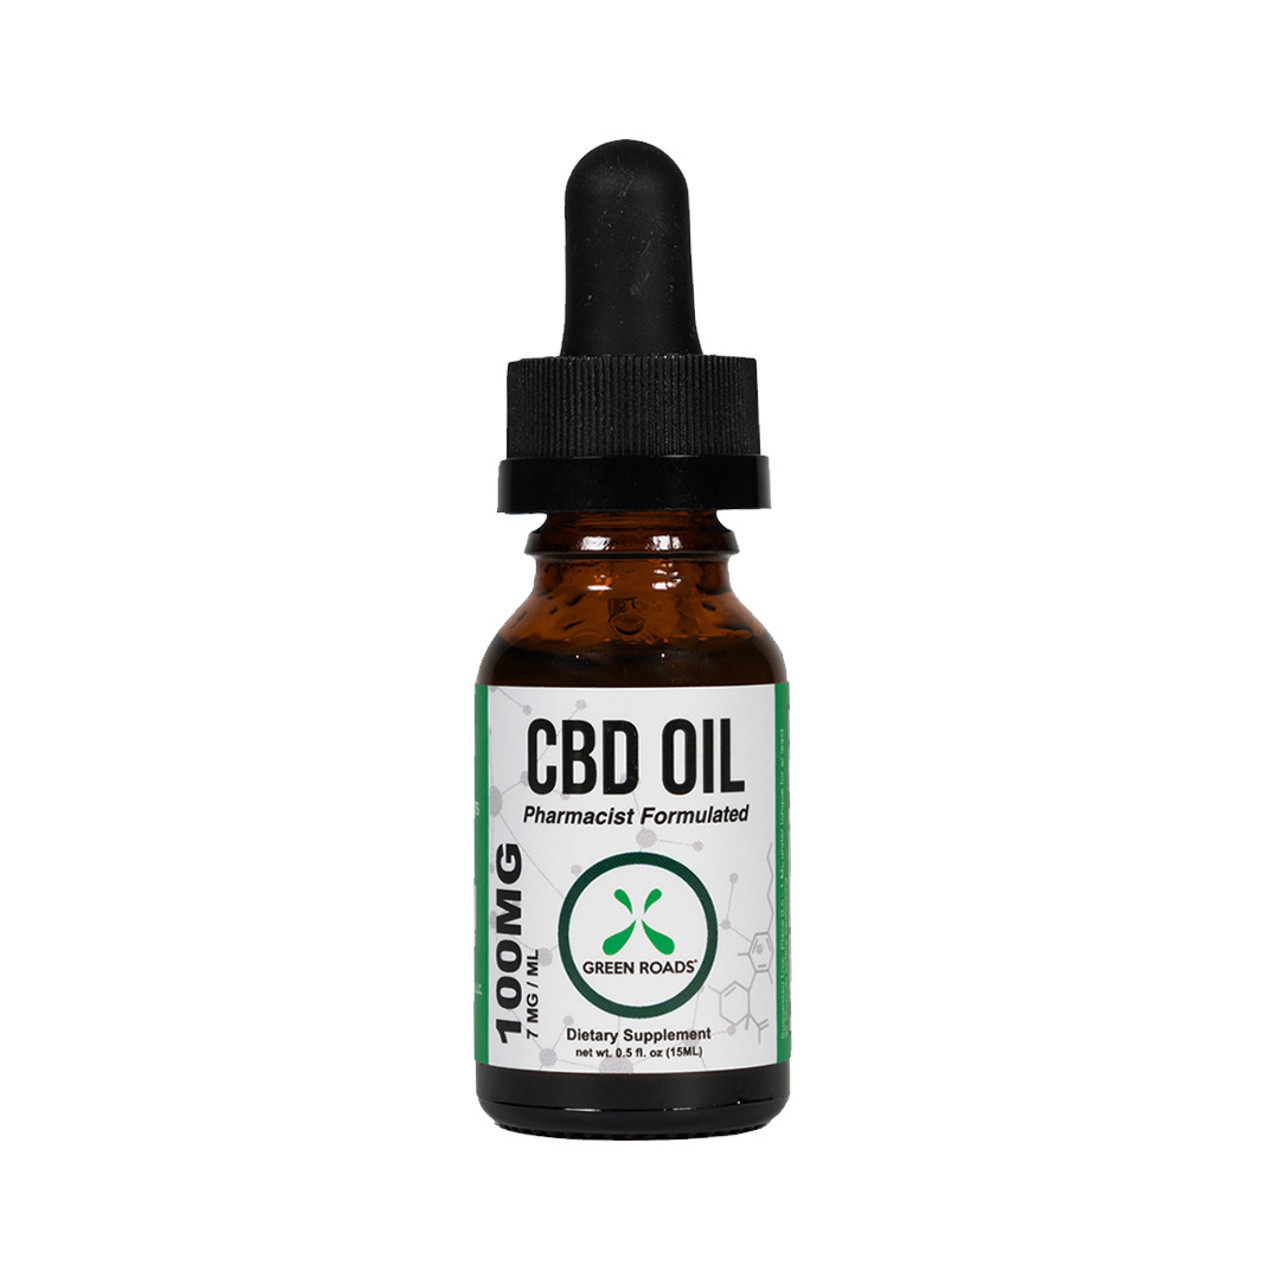 Green Roads 100 mg CBD Oil is a low dosage of cannabidiol oil perfect for CBD beginners or for those who have established their preferred daily amount of CBD